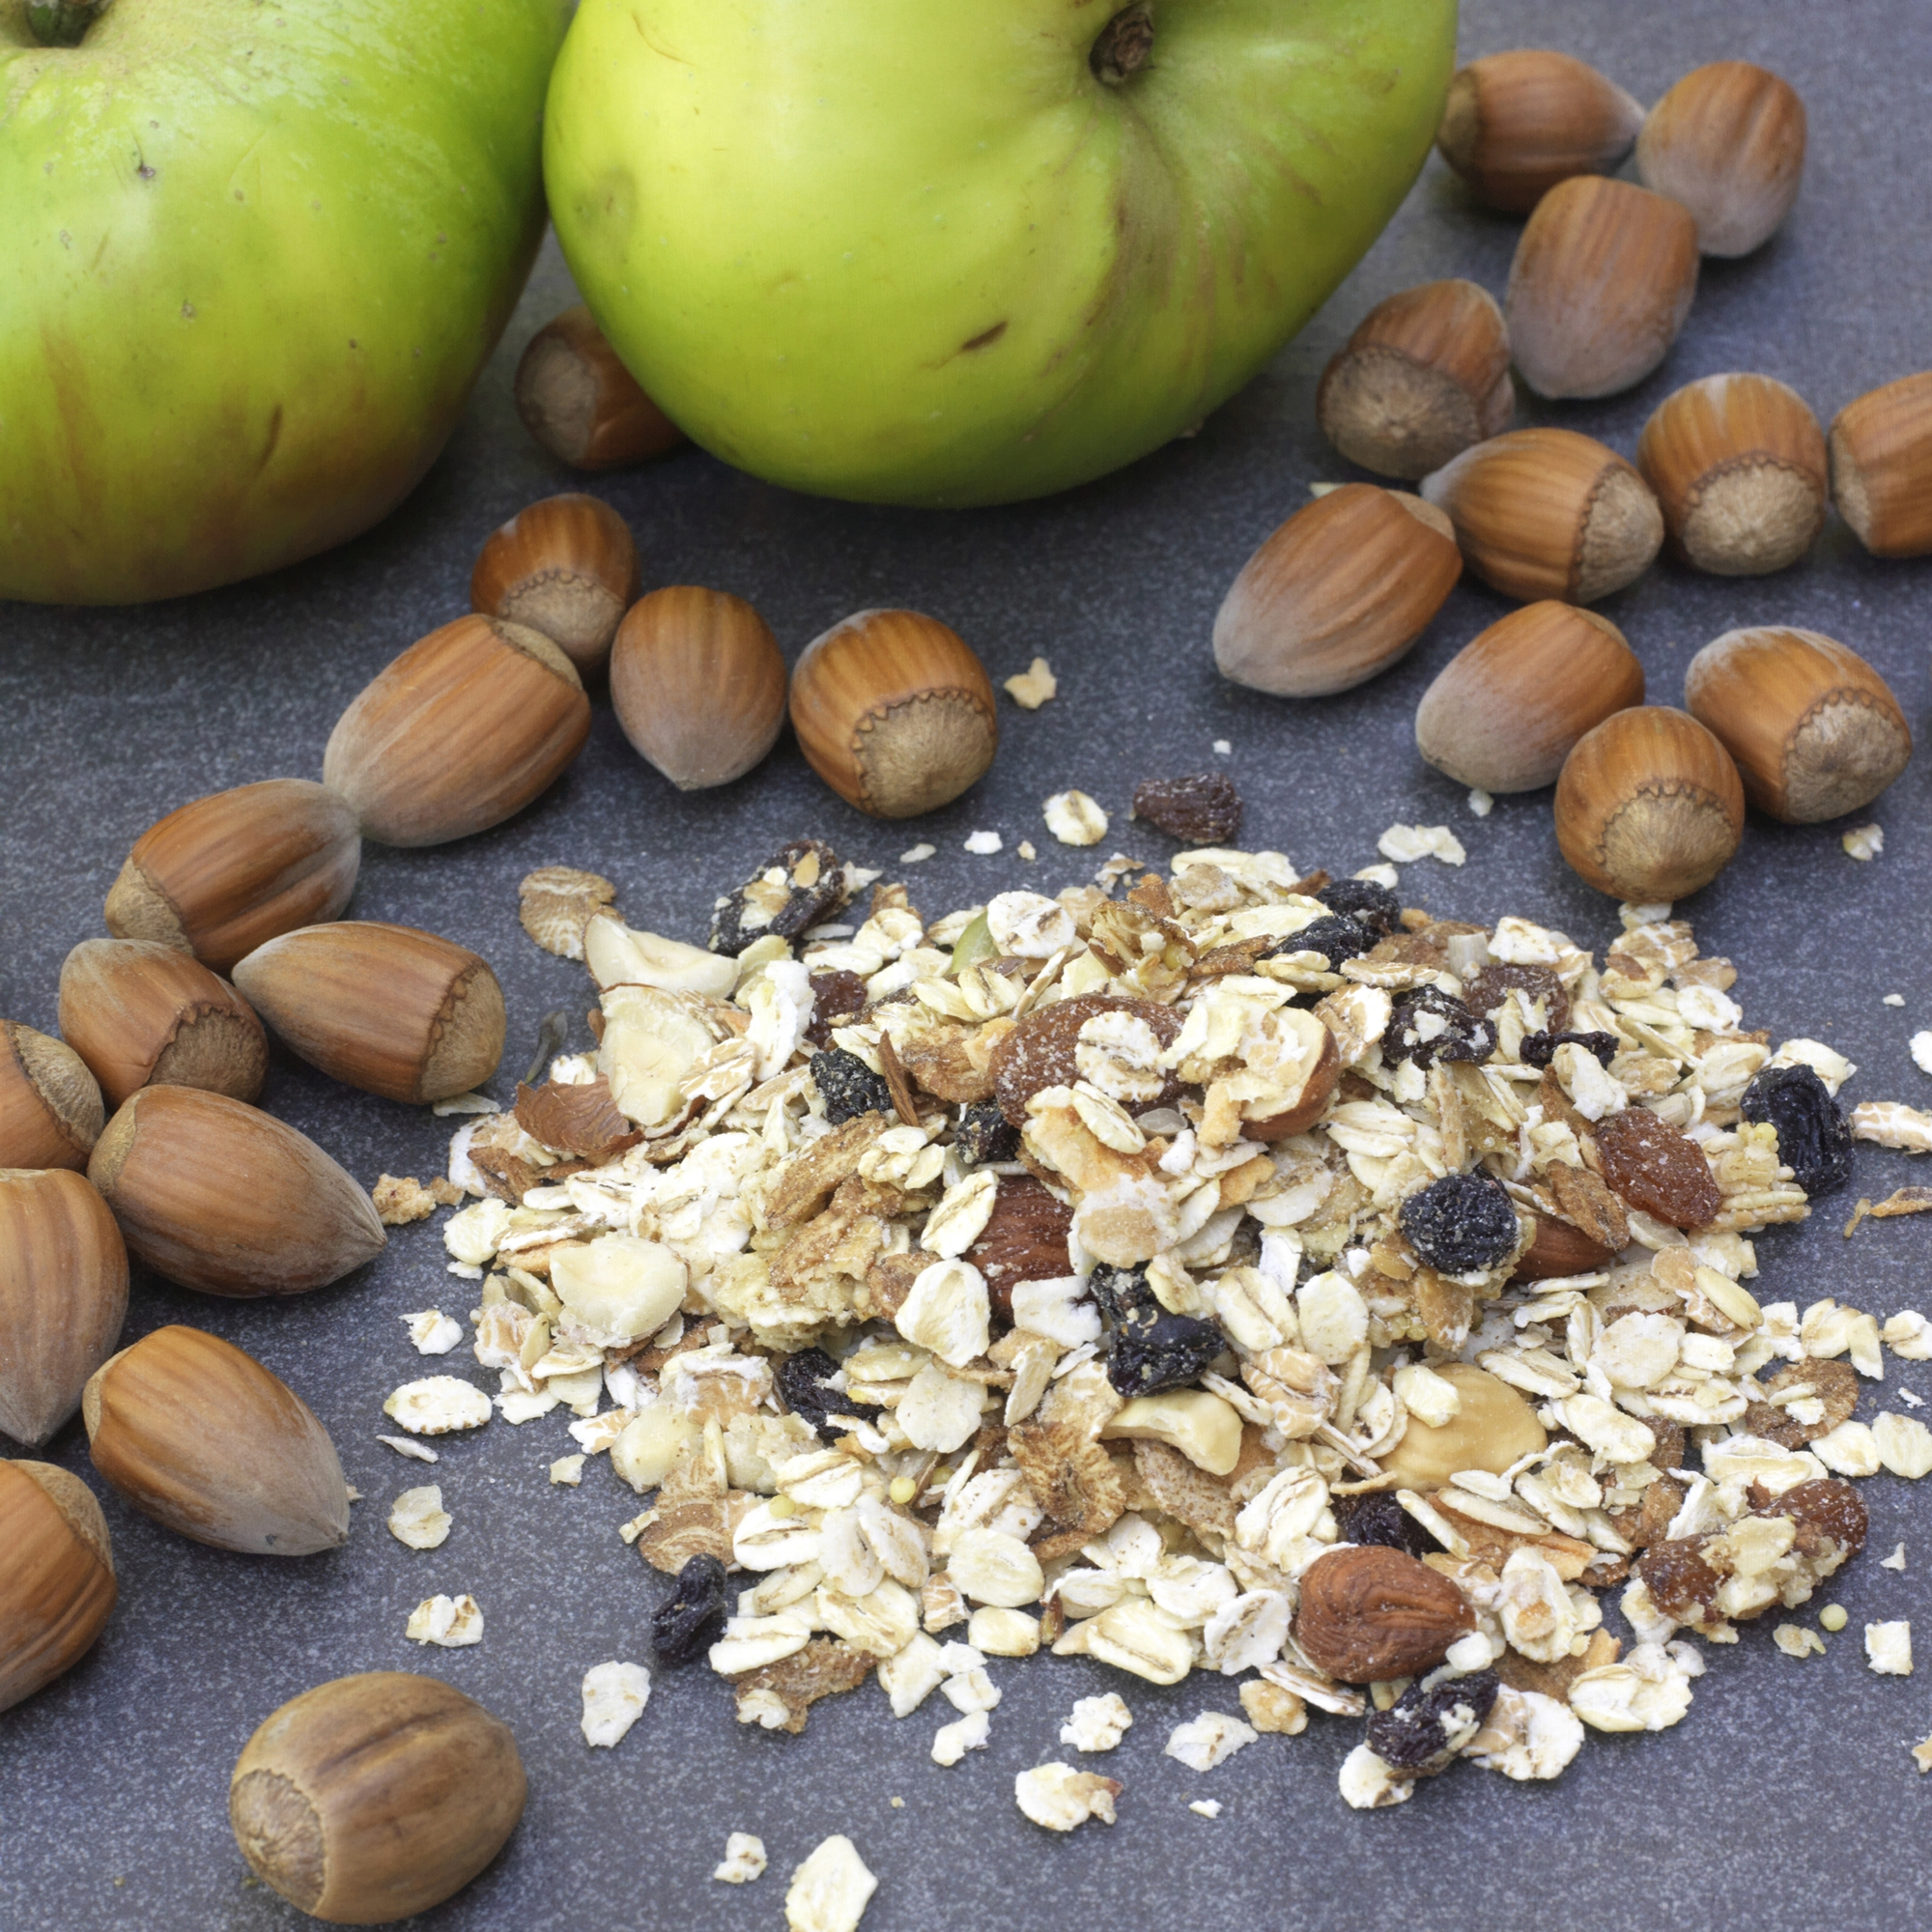 Kentish Cobnut And Bramley Apple Granola Muesli - A very healthy granola muesli made with oats, Kentish Cobnuts, mixed seeds, and Kentish Bramley apple.